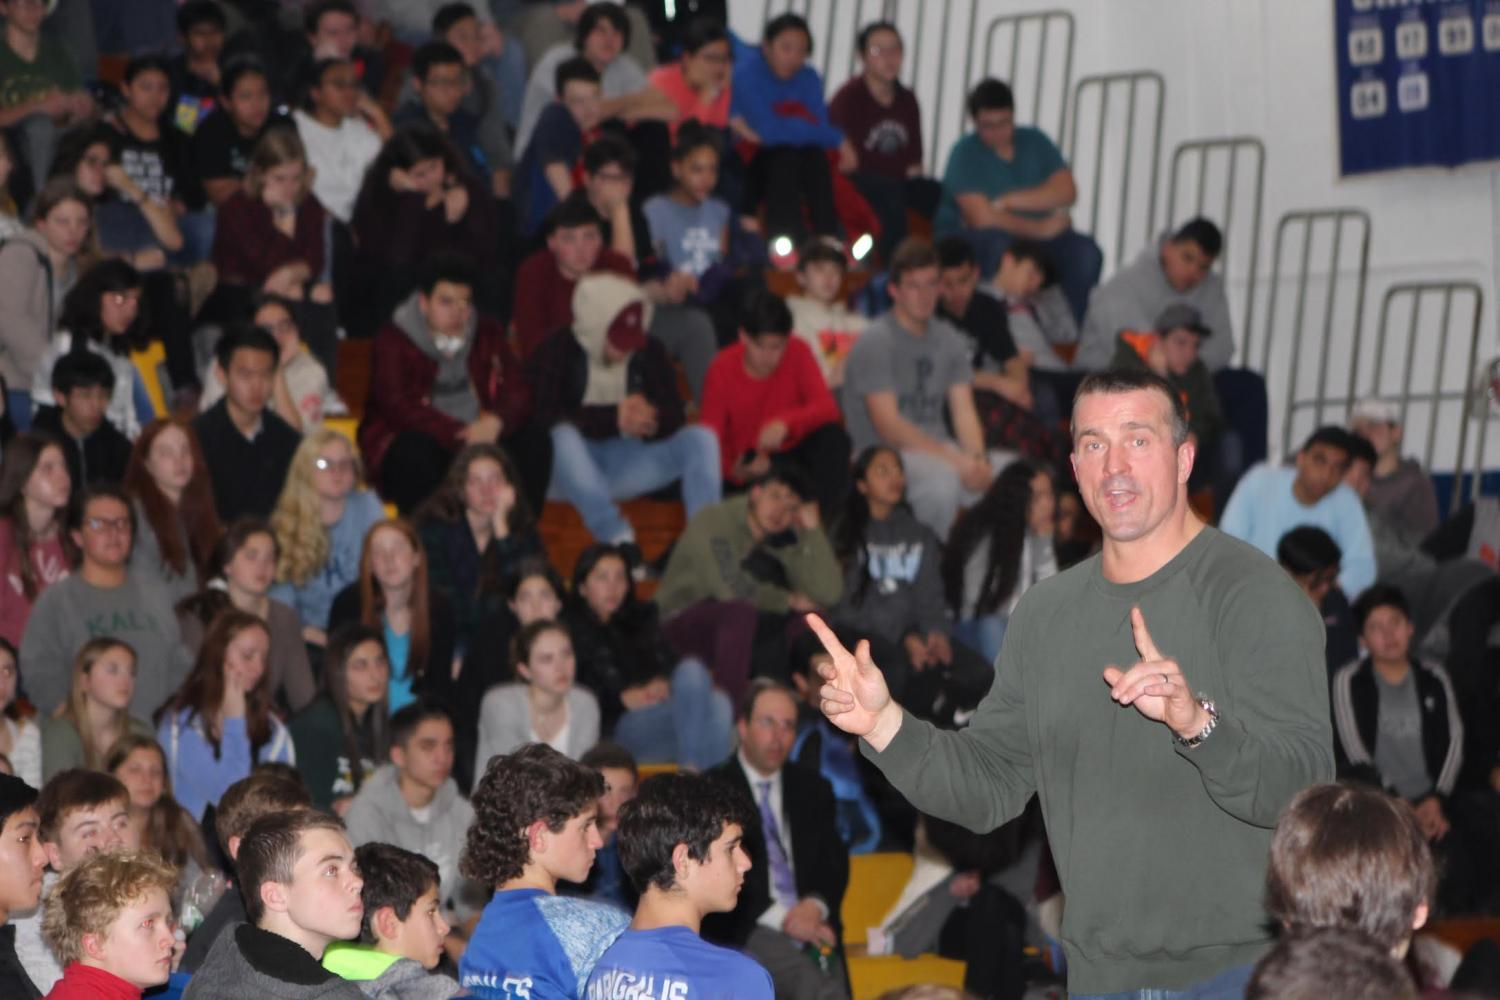 Chris+Herren+spoke+to+the+student+body+about+his+experiences+with+drug+abuse+as+a+professional+NBA+player%2C+and+how+it+caused+issues+in+both+his+professional+and+personal+life.+He+also+answered+questions+and+gave+advice+about+how+to+maintain+a+drug-free+lifestyle.